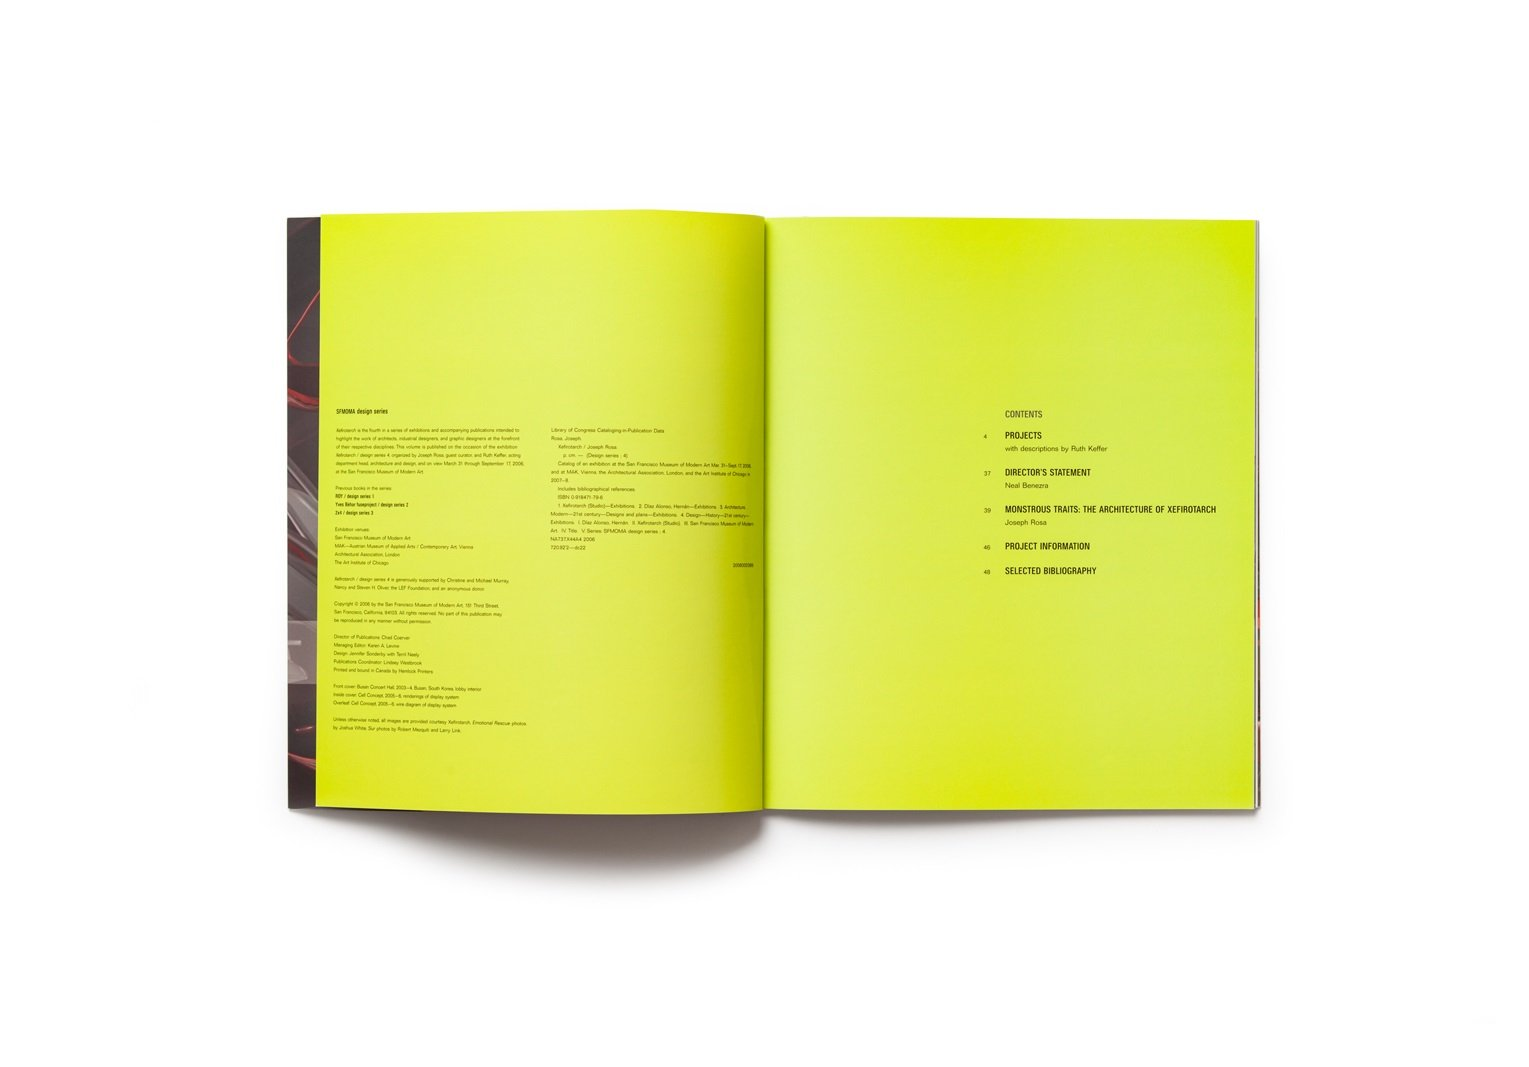 Xefirotarch: design series 4 publication table of contents